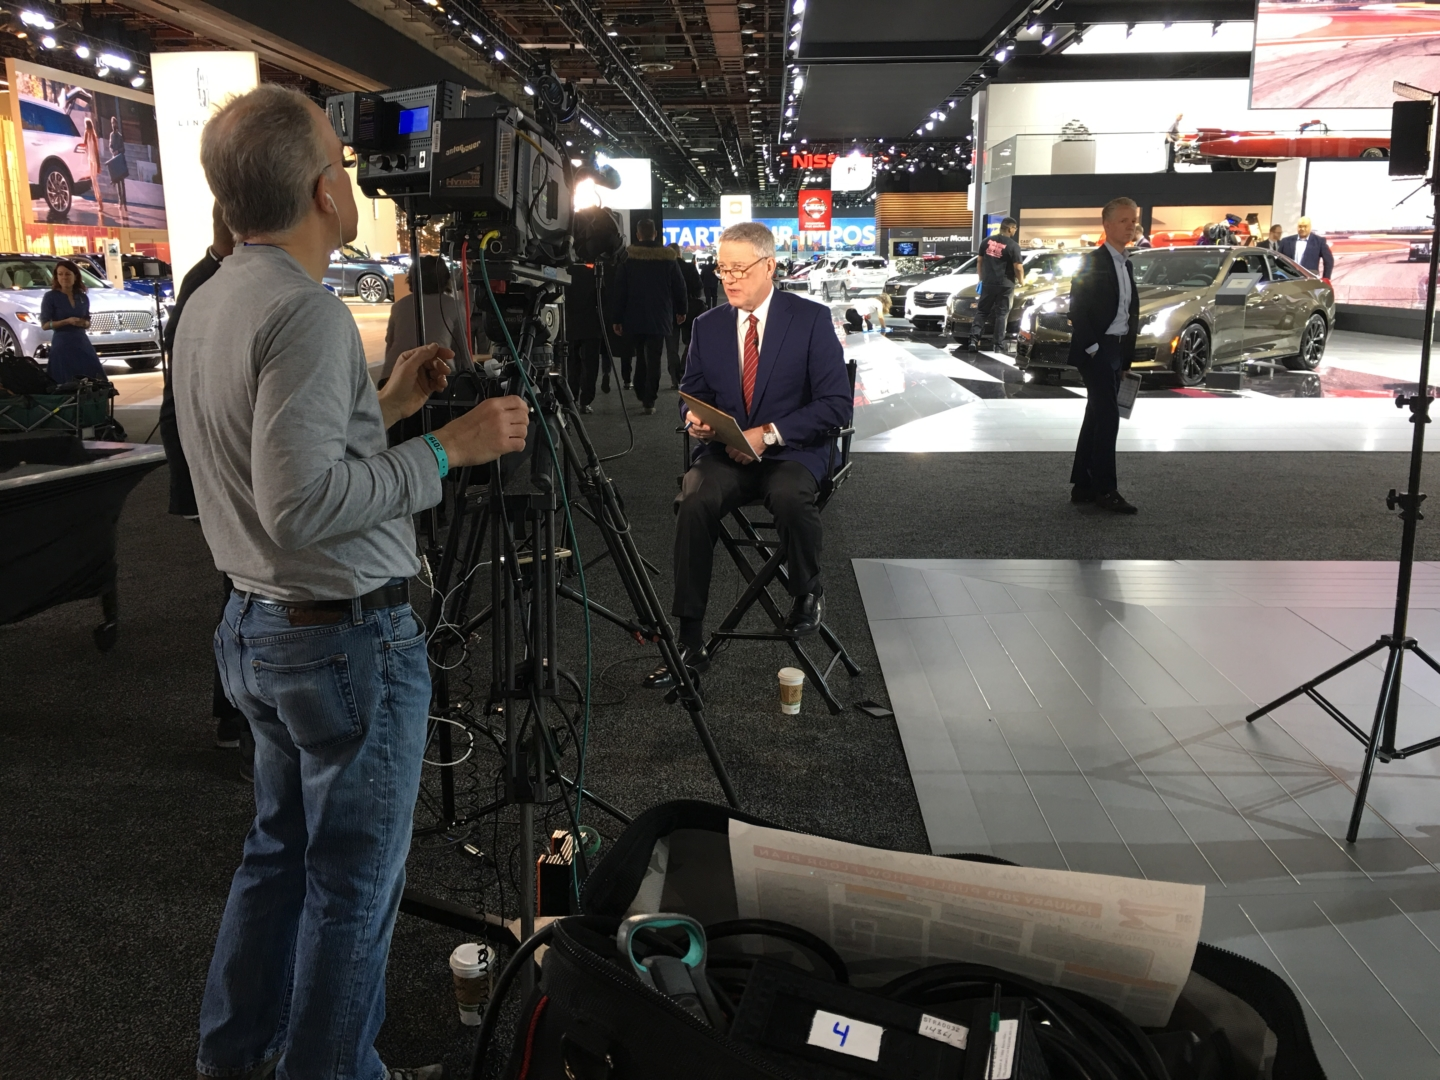 A man is speaking in front of a camera next to vehicles on display at the 2019 Detroit Auto Show